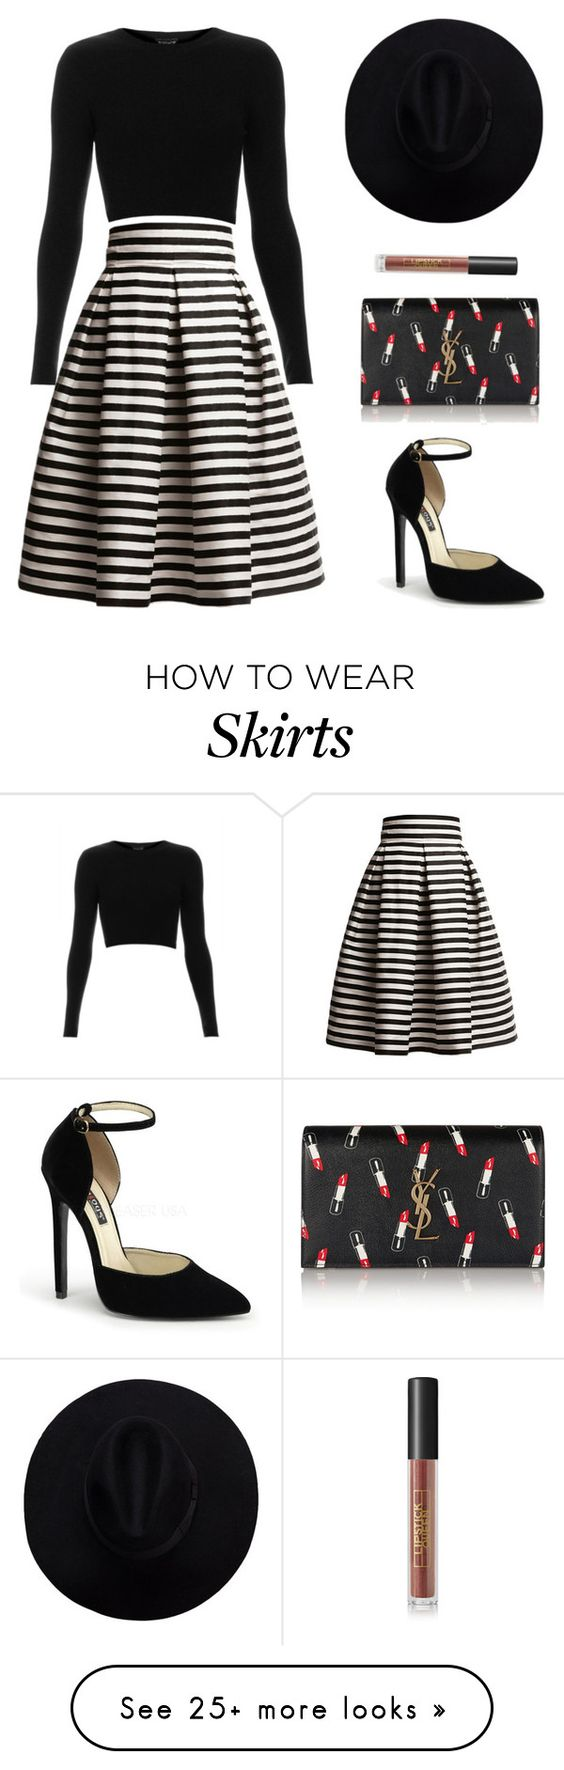 """Untitled #710"" by patrisha175 on Polyvore featuring Rumour London, Topshop, Yves Saint Laurent and Lipstick Queen"